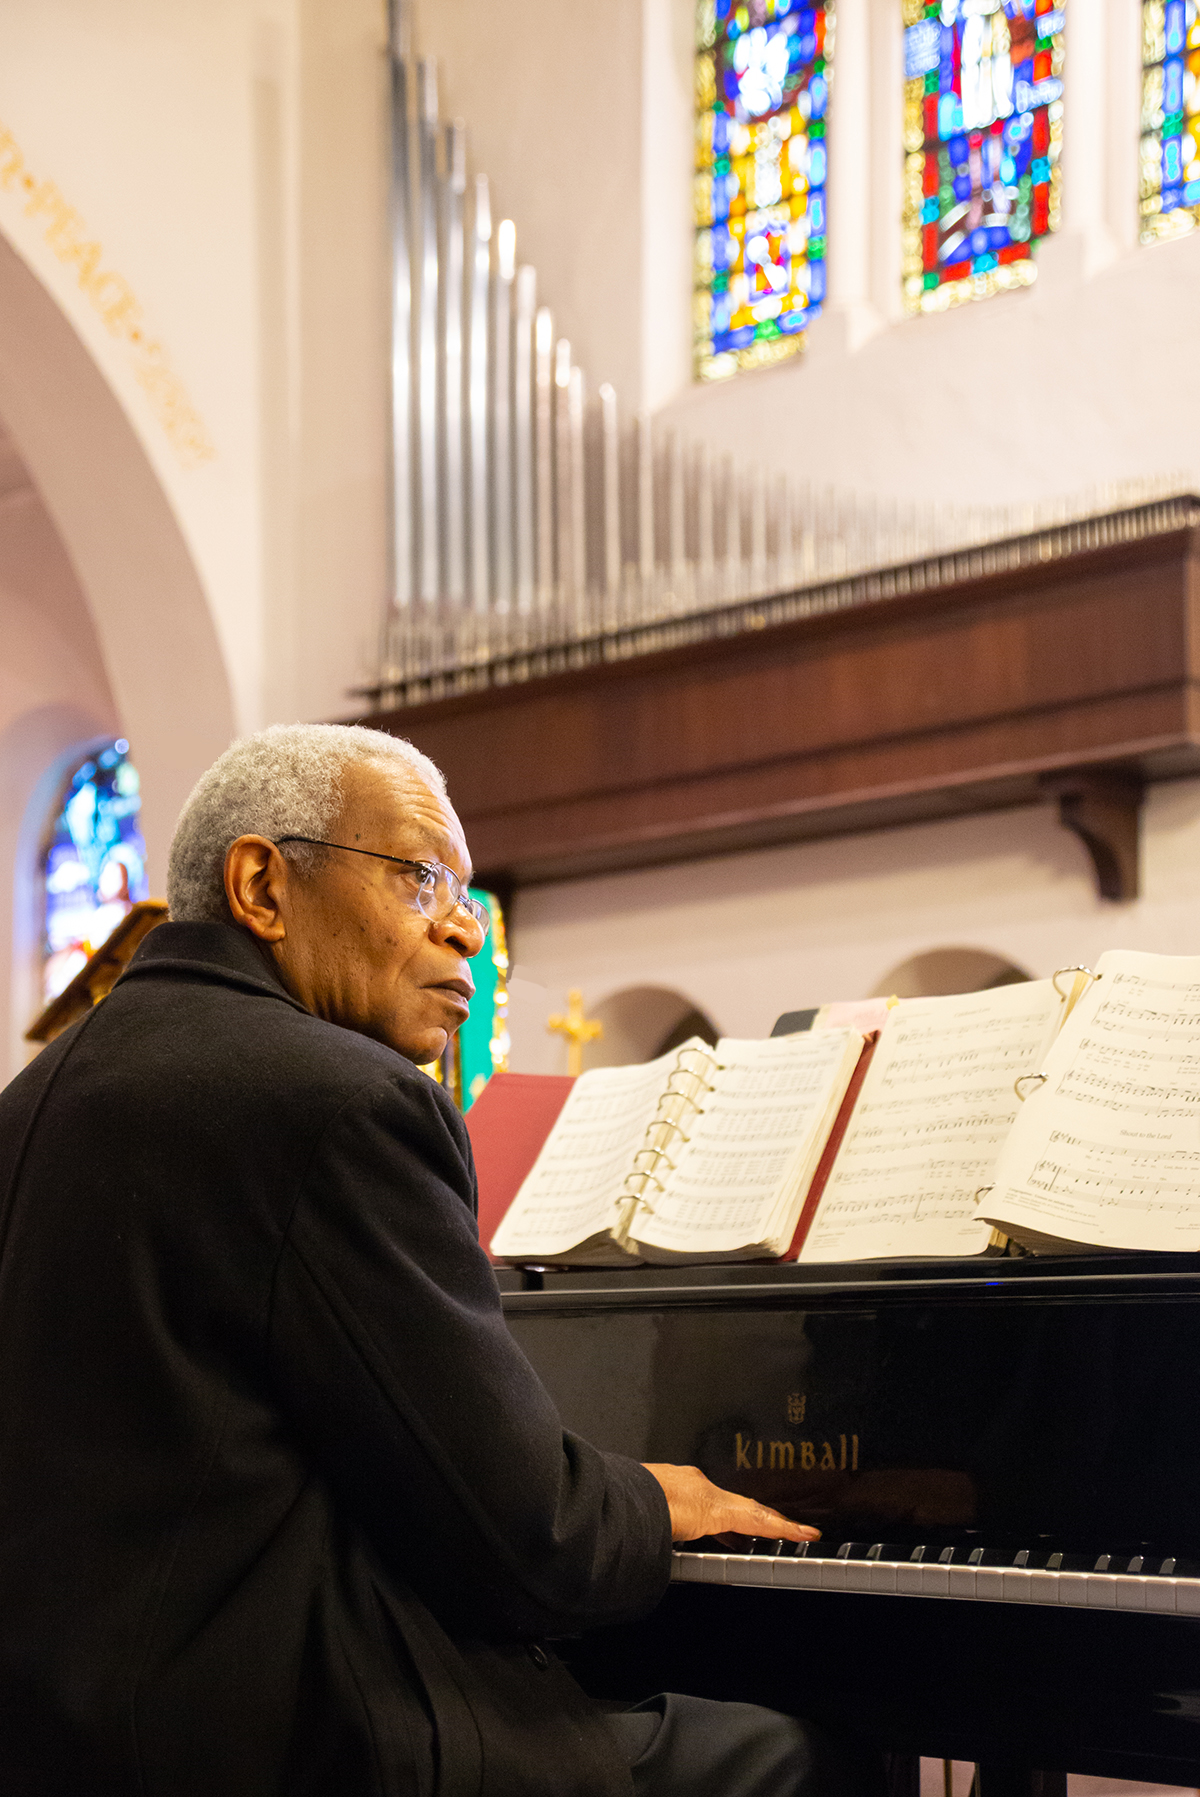 Pianist plays during the english language service